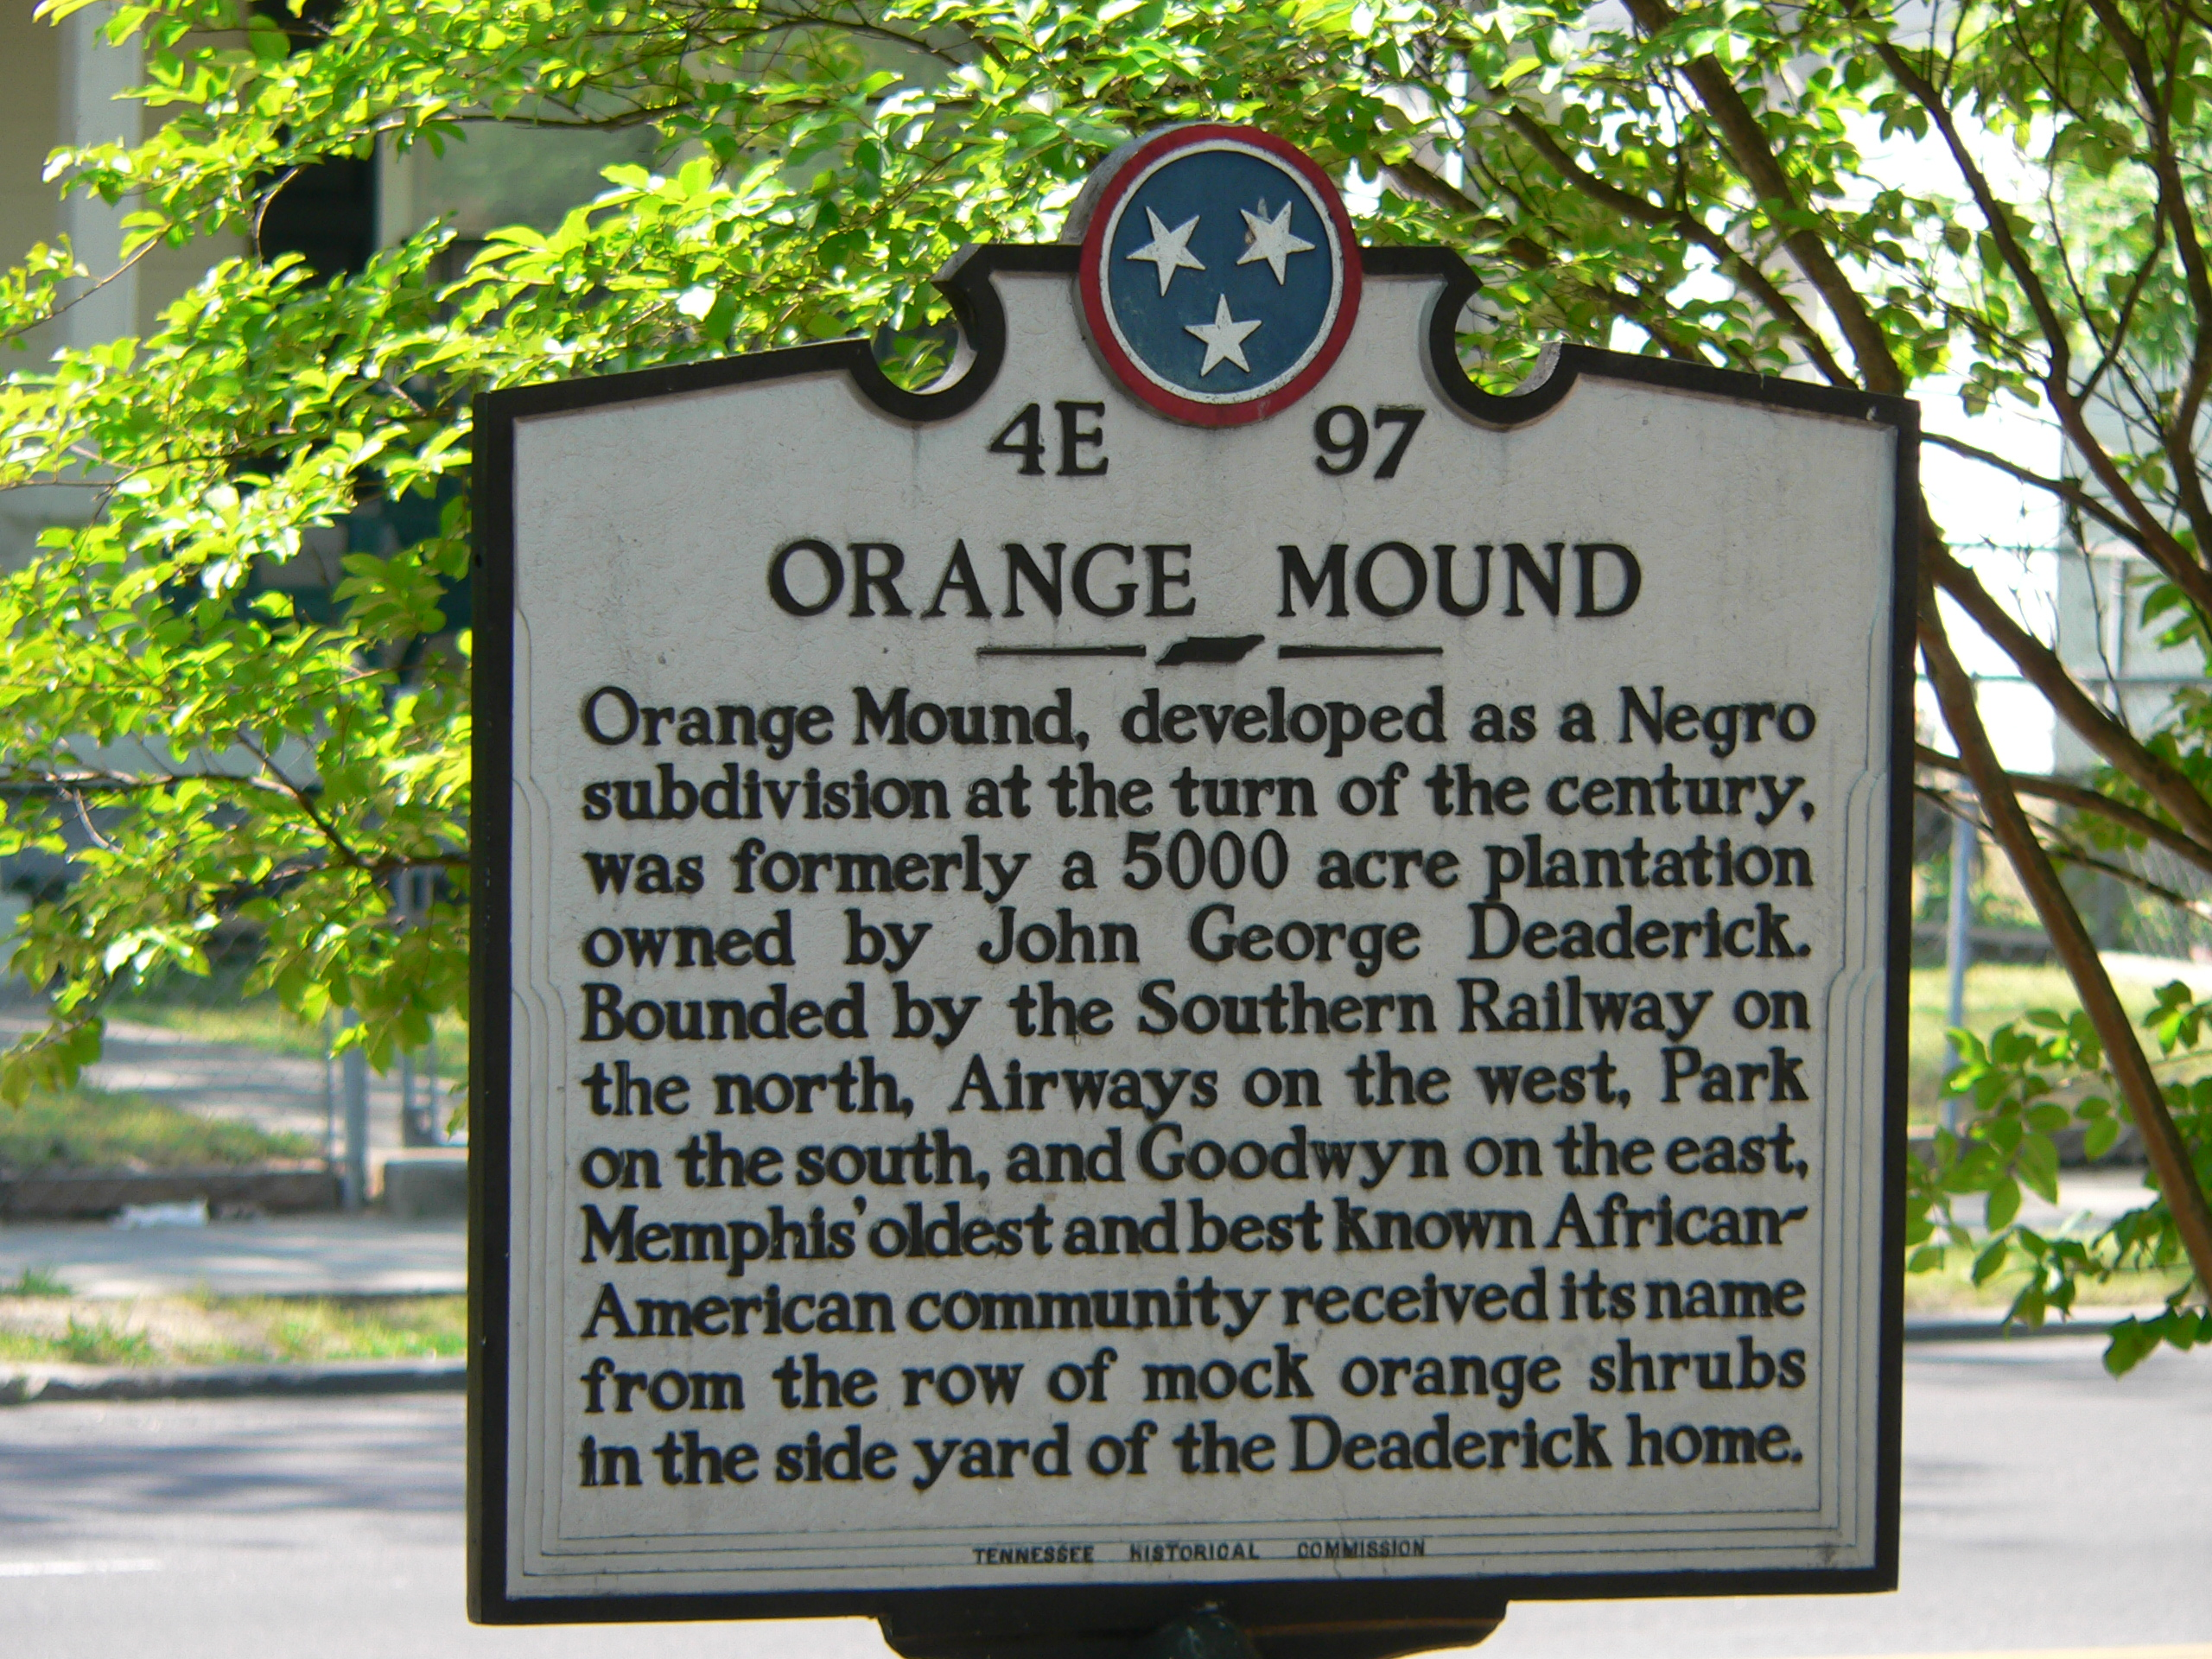 This is the original marker commemorating Orange Mound.